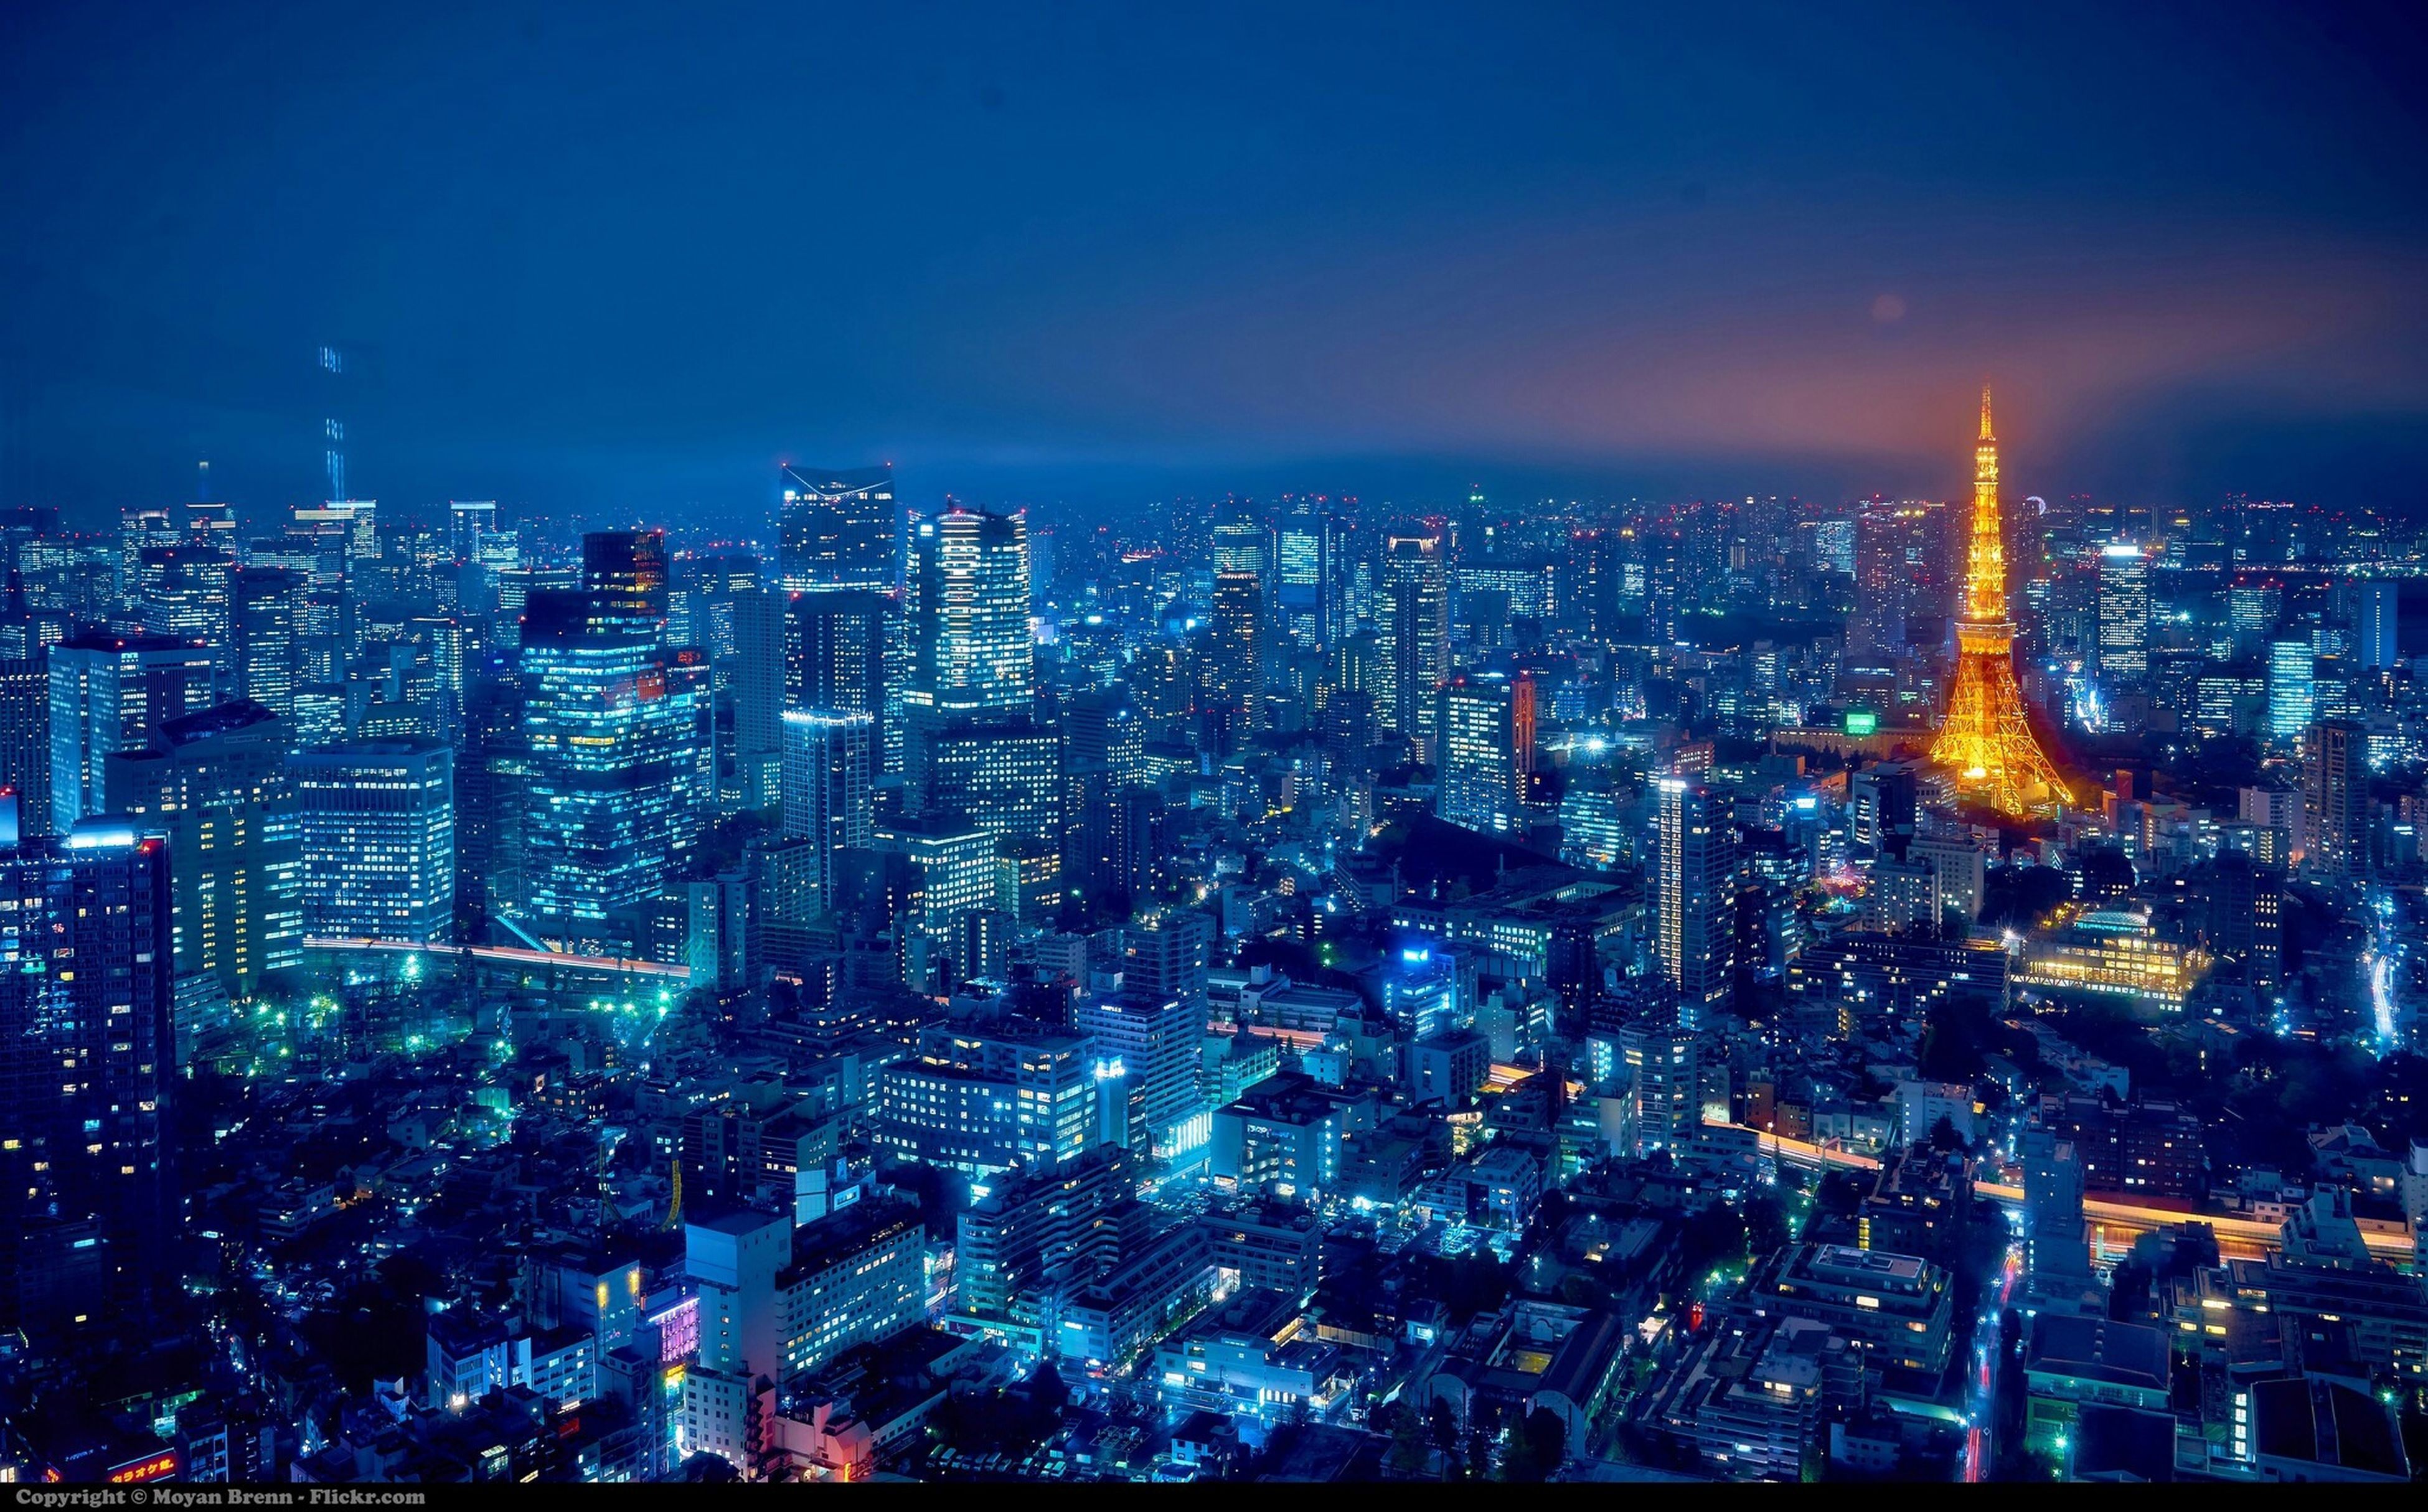 illuminated, cityscape, city, night, building exterior, architecture, built structure, crowded, skyscraper, tower, tall - high, capital cities, aerial view, high angle view, modern, travel destinations, office building, financial district, residential district, sky